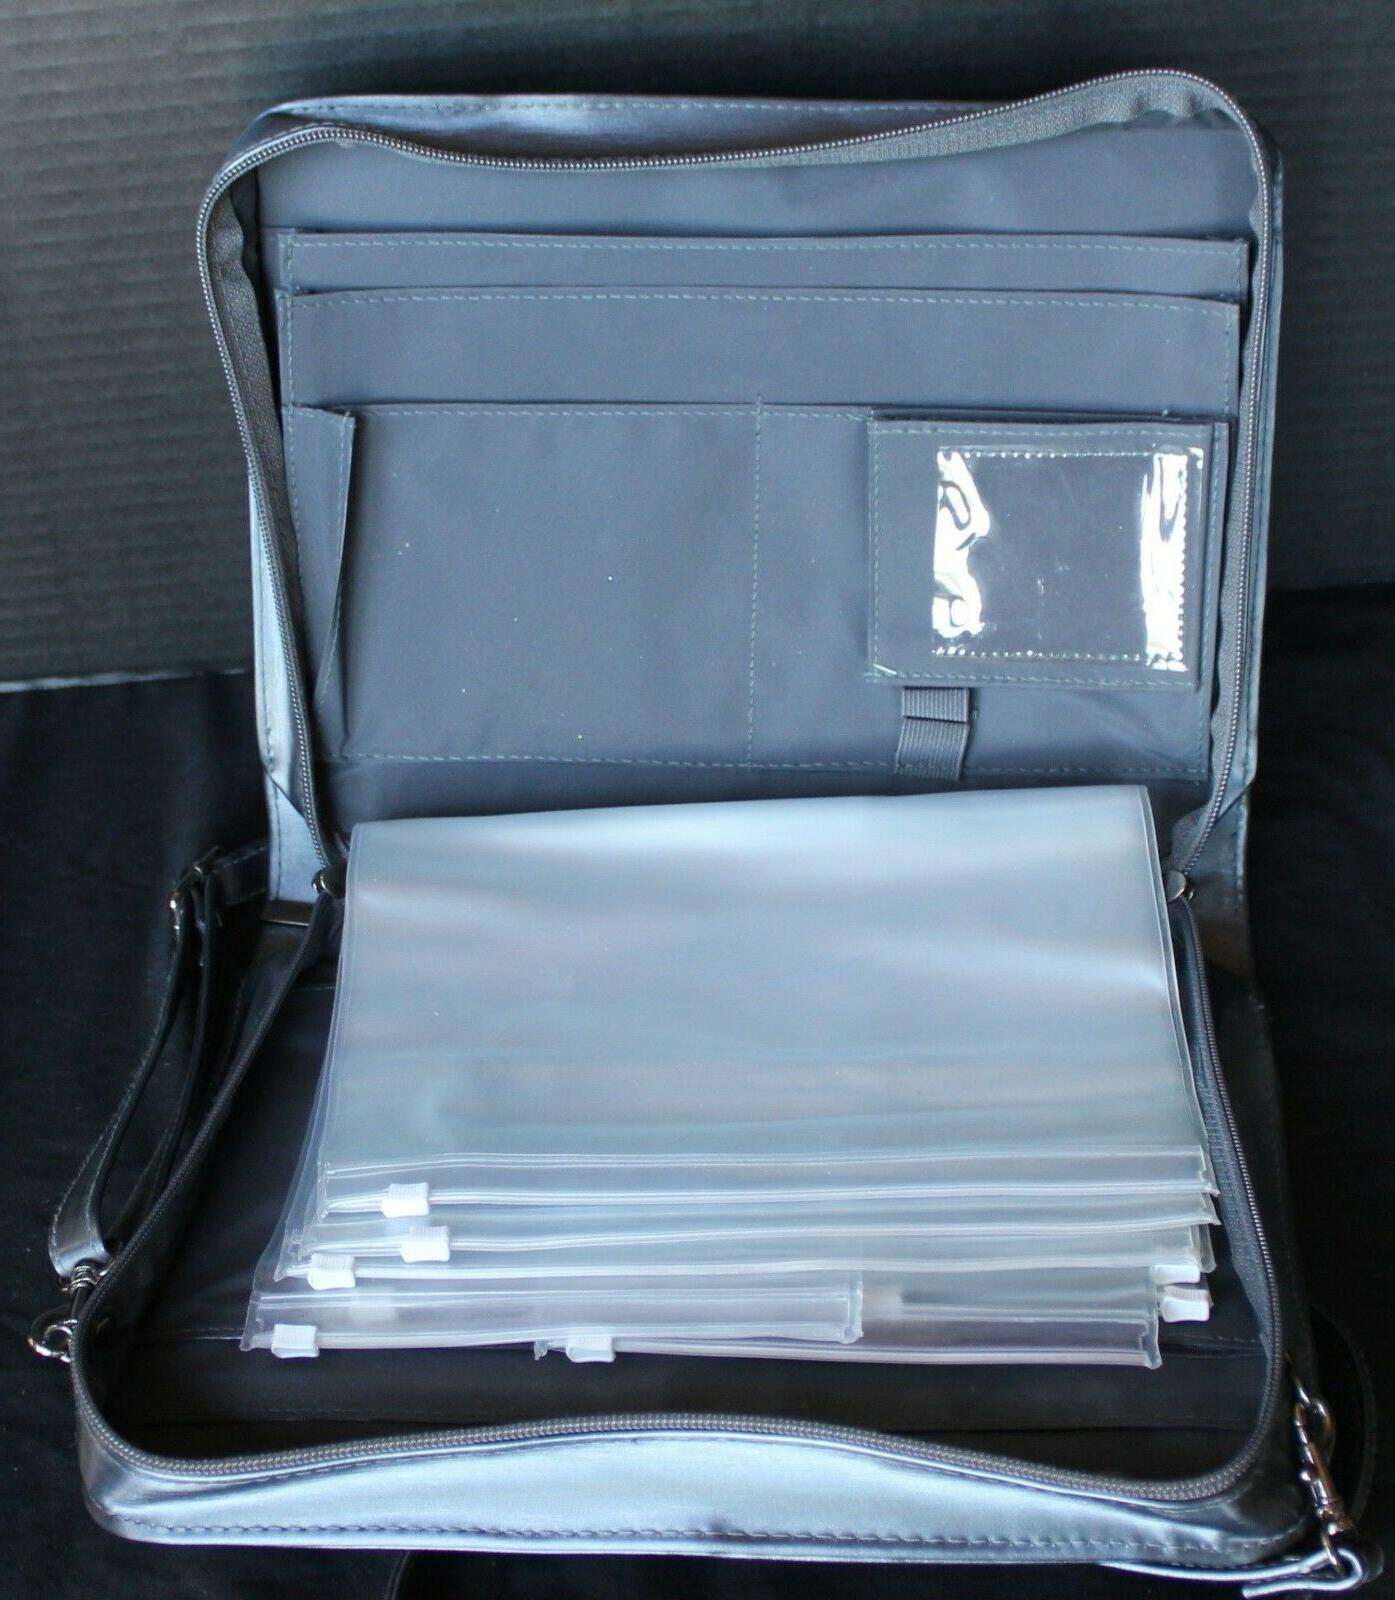 consultant sample binder w shoulder strap great